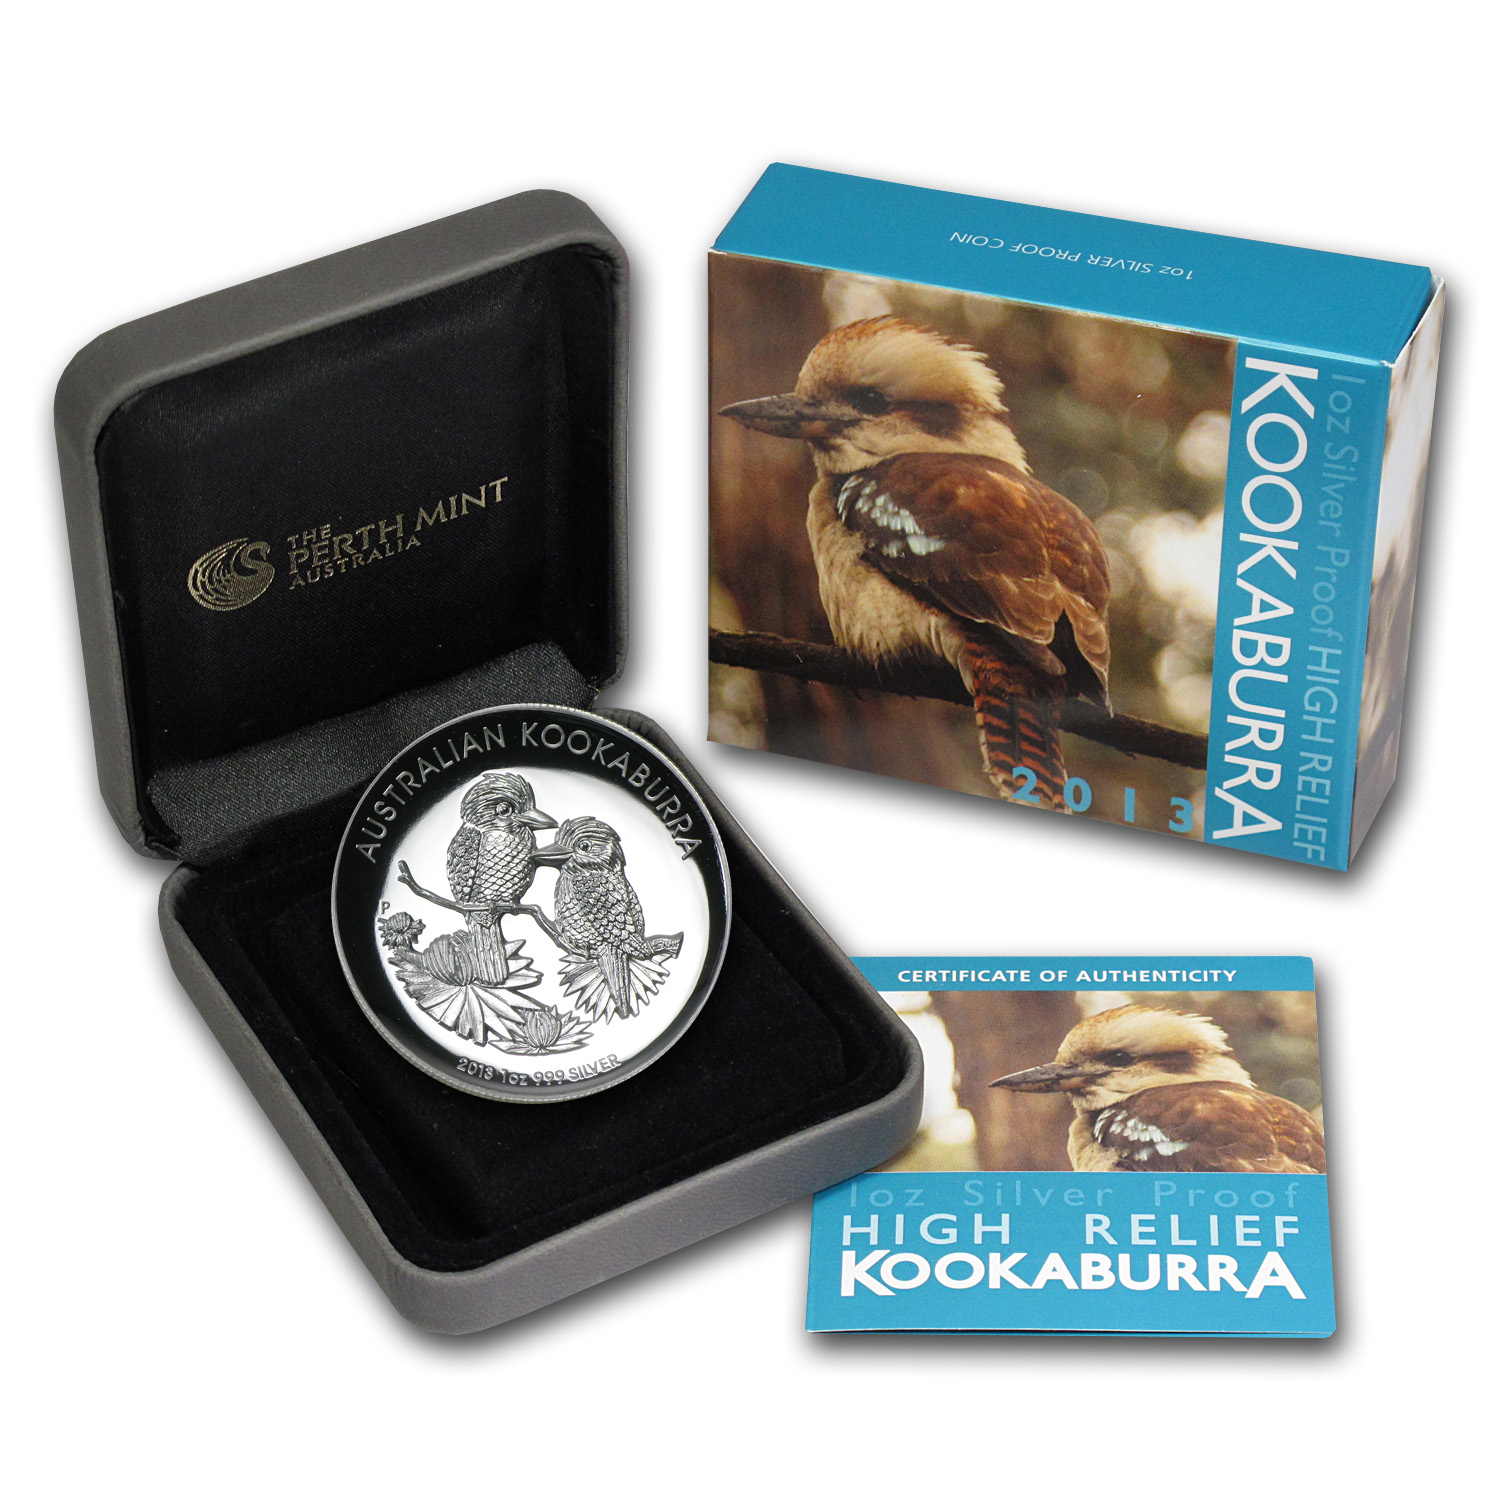 2013 Australia 1 oz Silver Kookaburra Proof (High Relief)